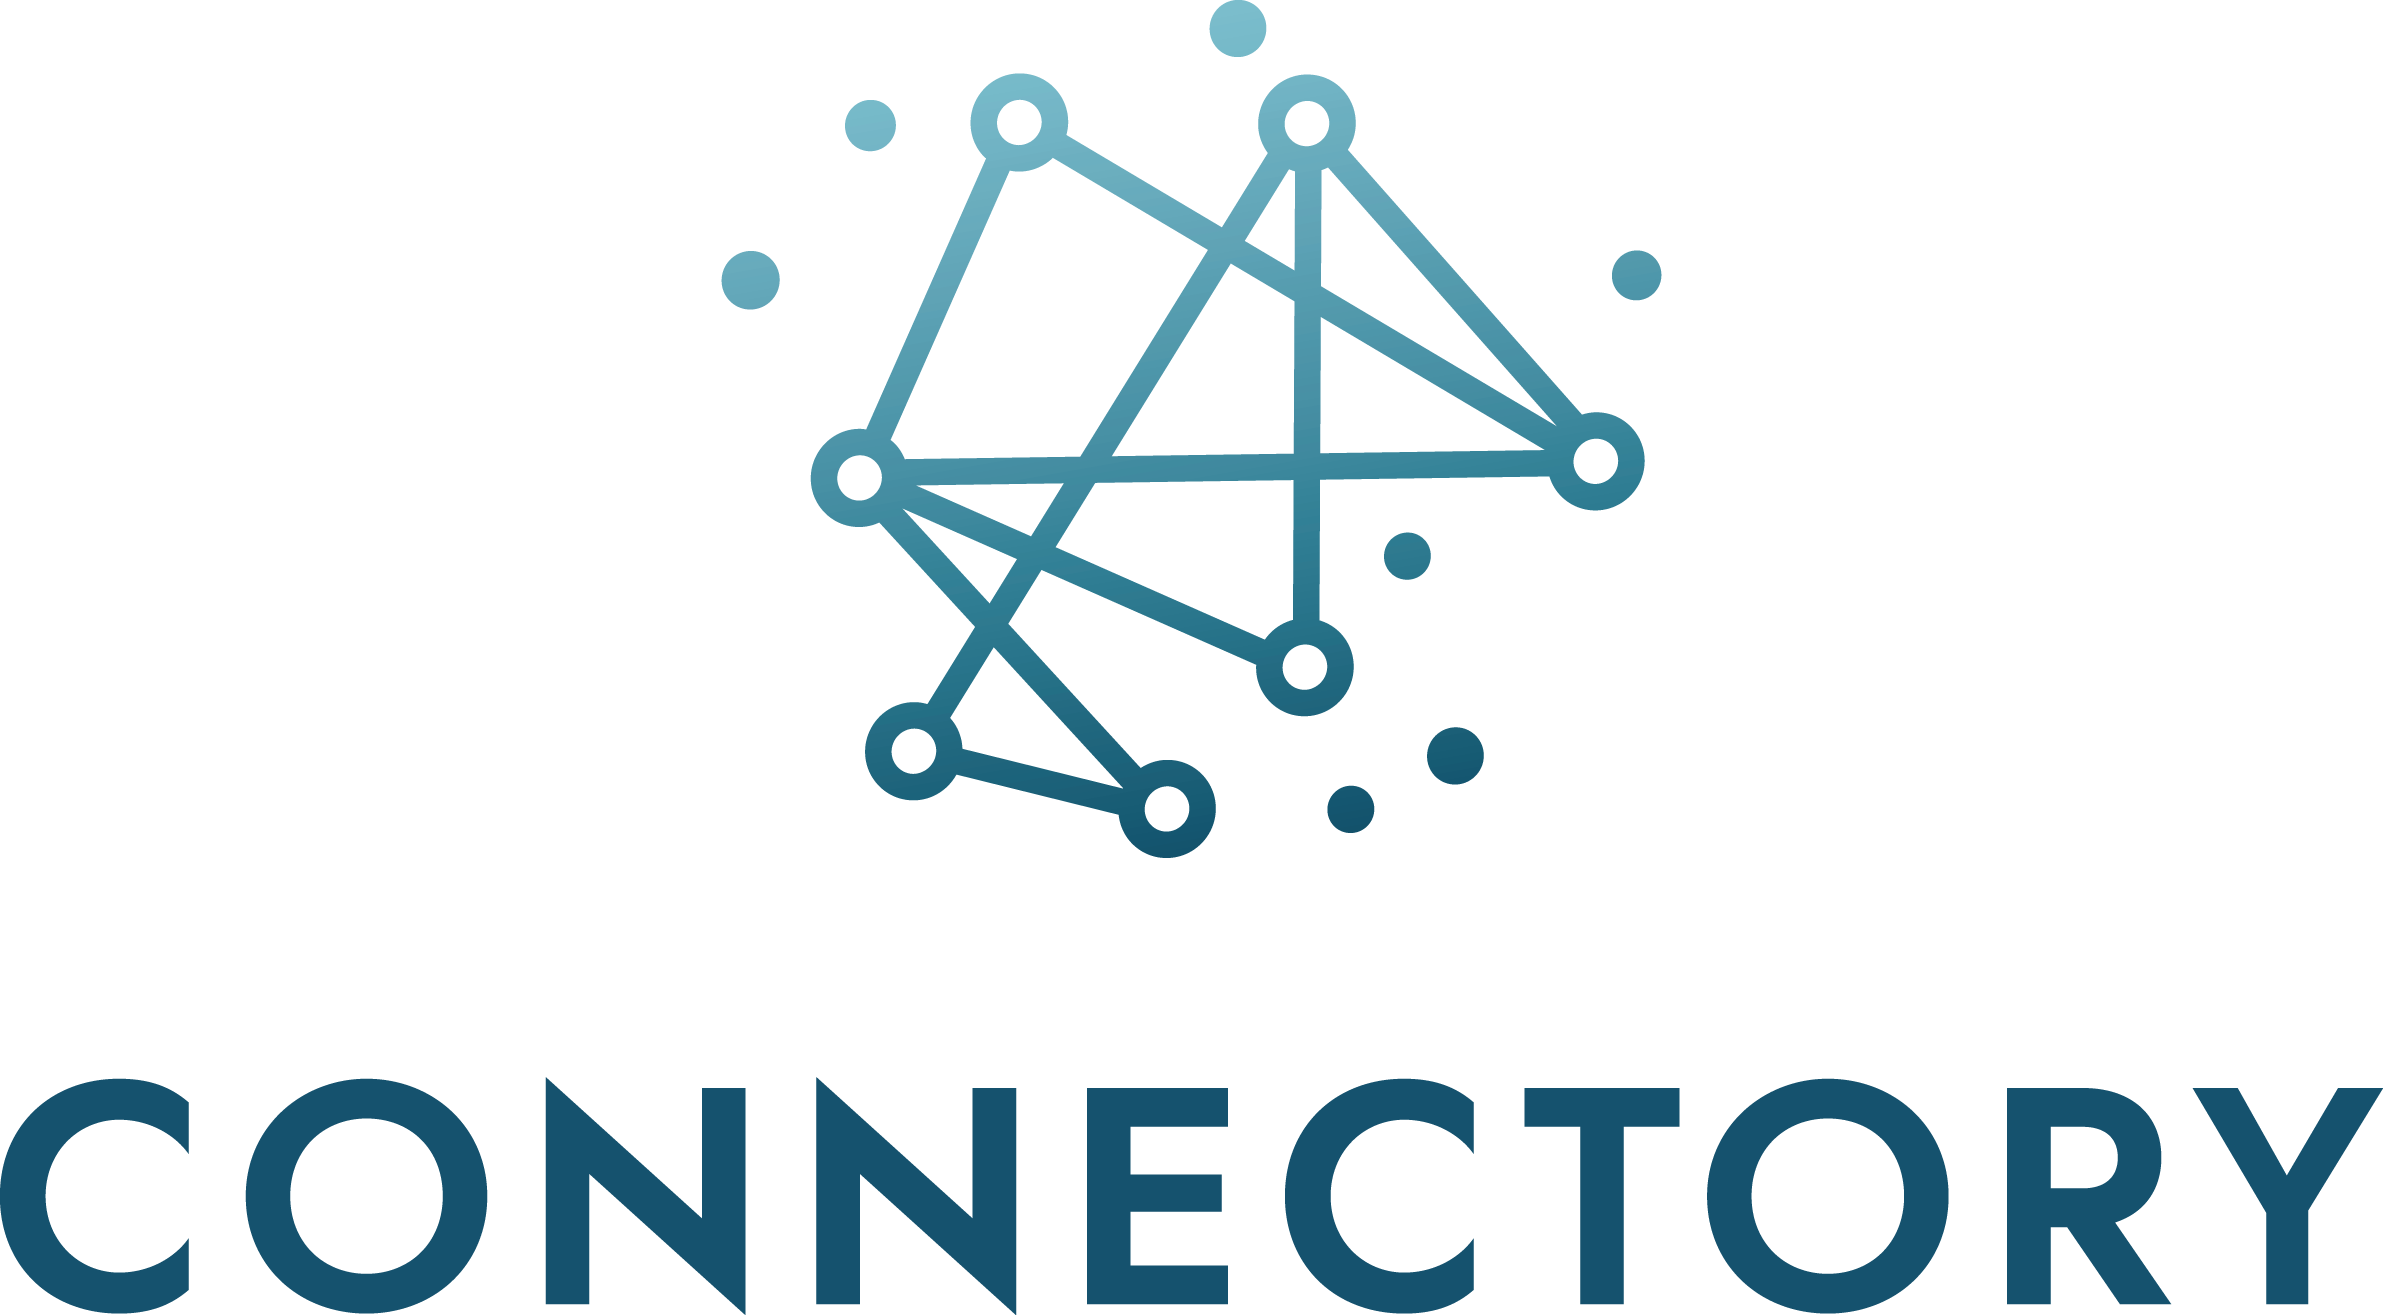 Connectory